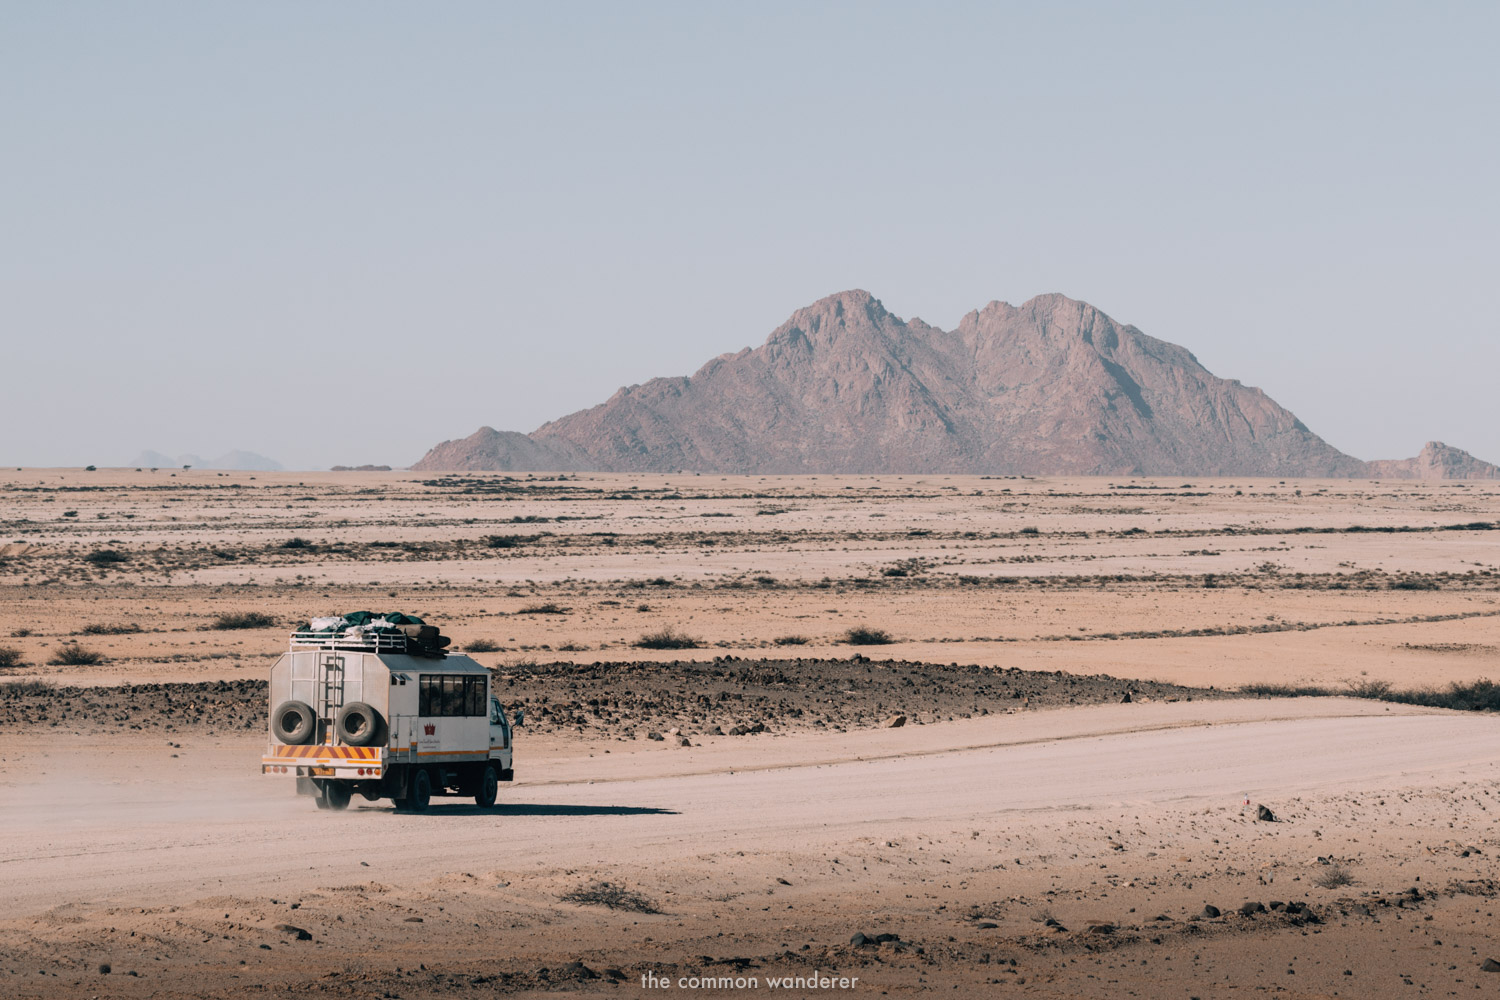 An overland bus travels through Namibia - overland can be a safe way to travel Africa